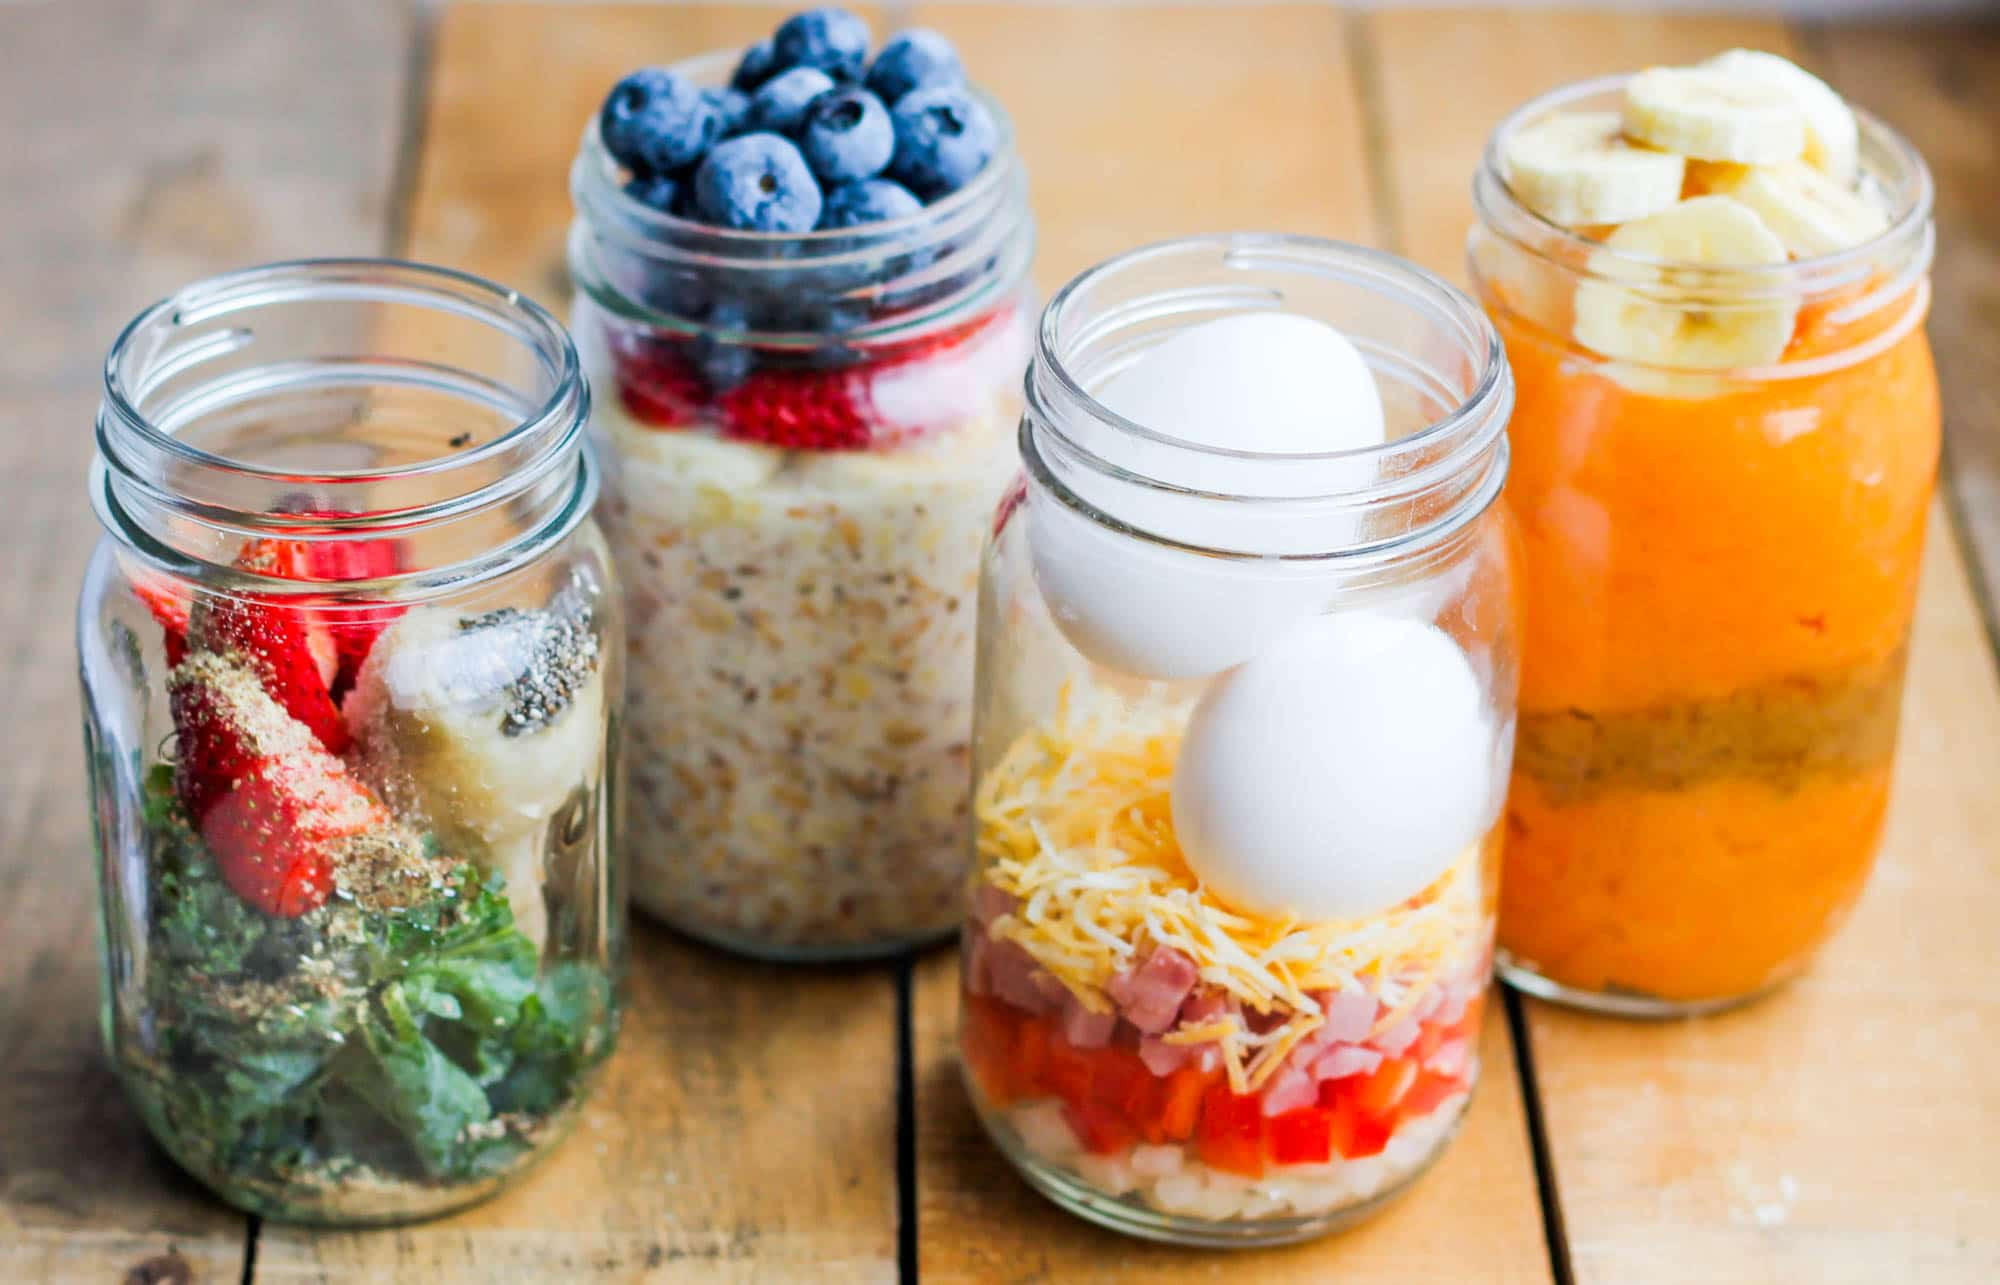 Healthy Breakfast Foods On The Go  Make Ahead Healthy Breakfast Meal Prep Jars 4 Ways